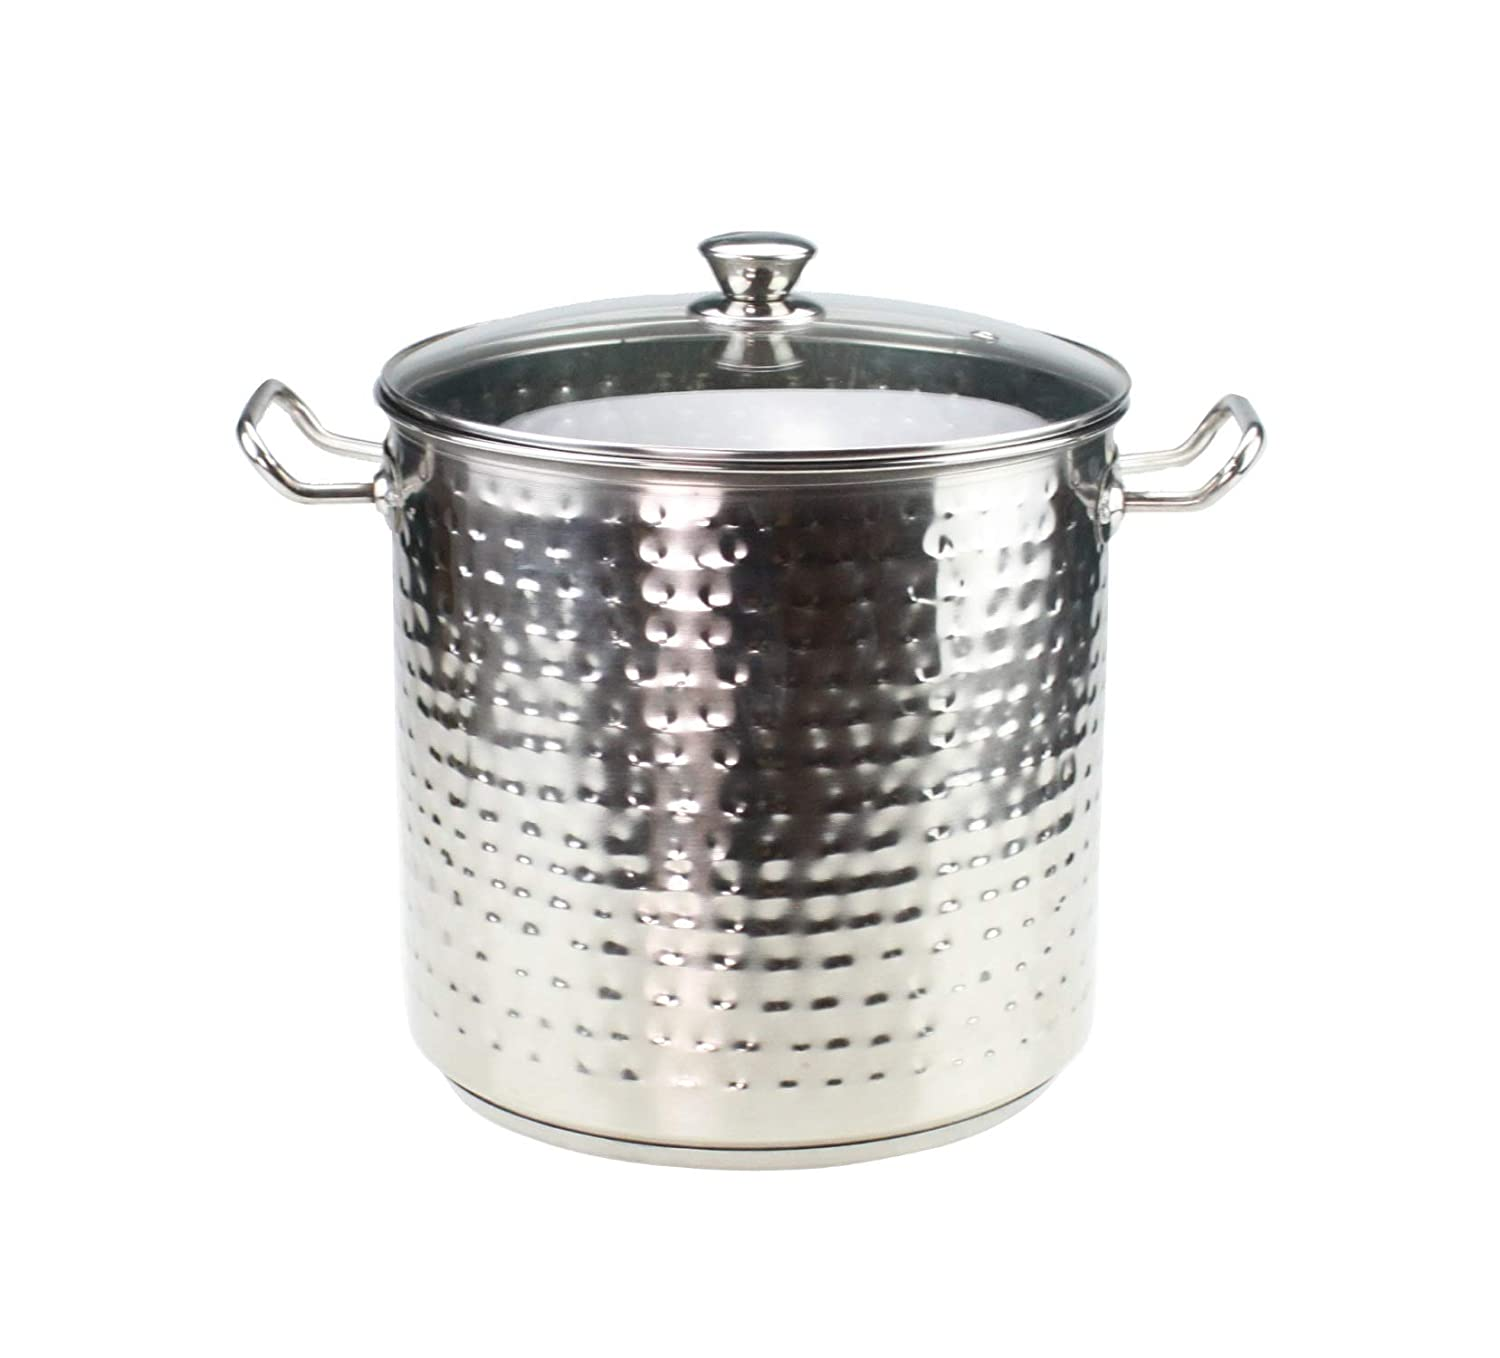 Stainless Steel Induction Stock Pot with Glass Lid Hammered Finish Deep Glass Lid Large Stock Pot Cooking Pot Induction Base Bottom with Handles 7.5L/23cm, 11L/25cm, 15L/28cm & 19L/30cm (7.5L / 23cm) GK Global Kitchen